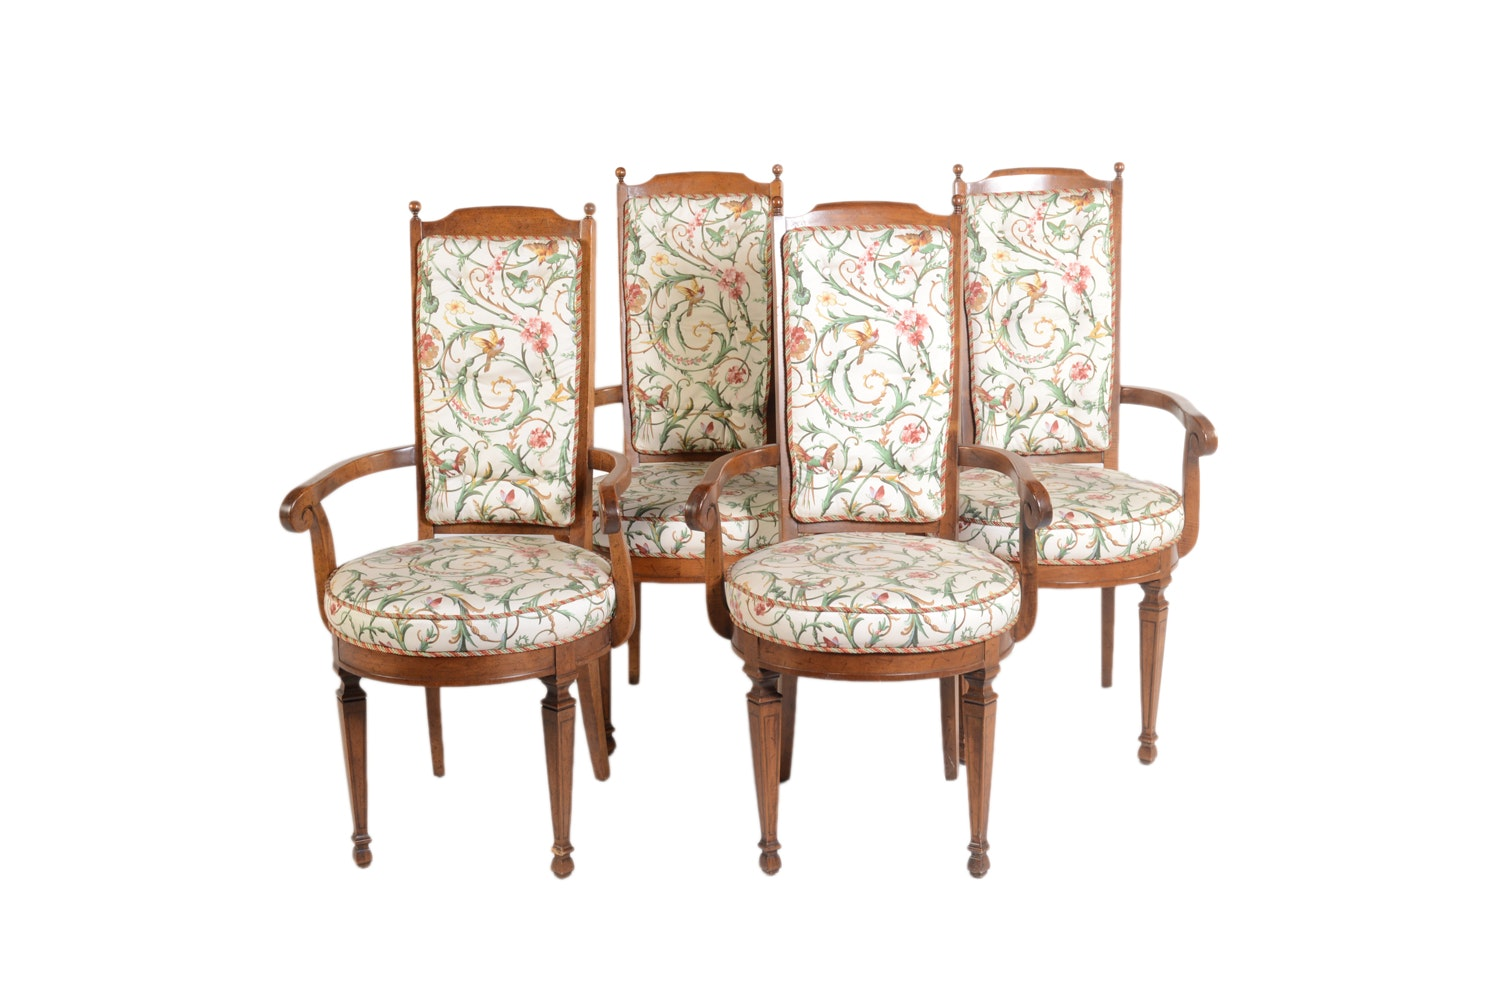 Vintage Floral Upholstered Dining Chairs